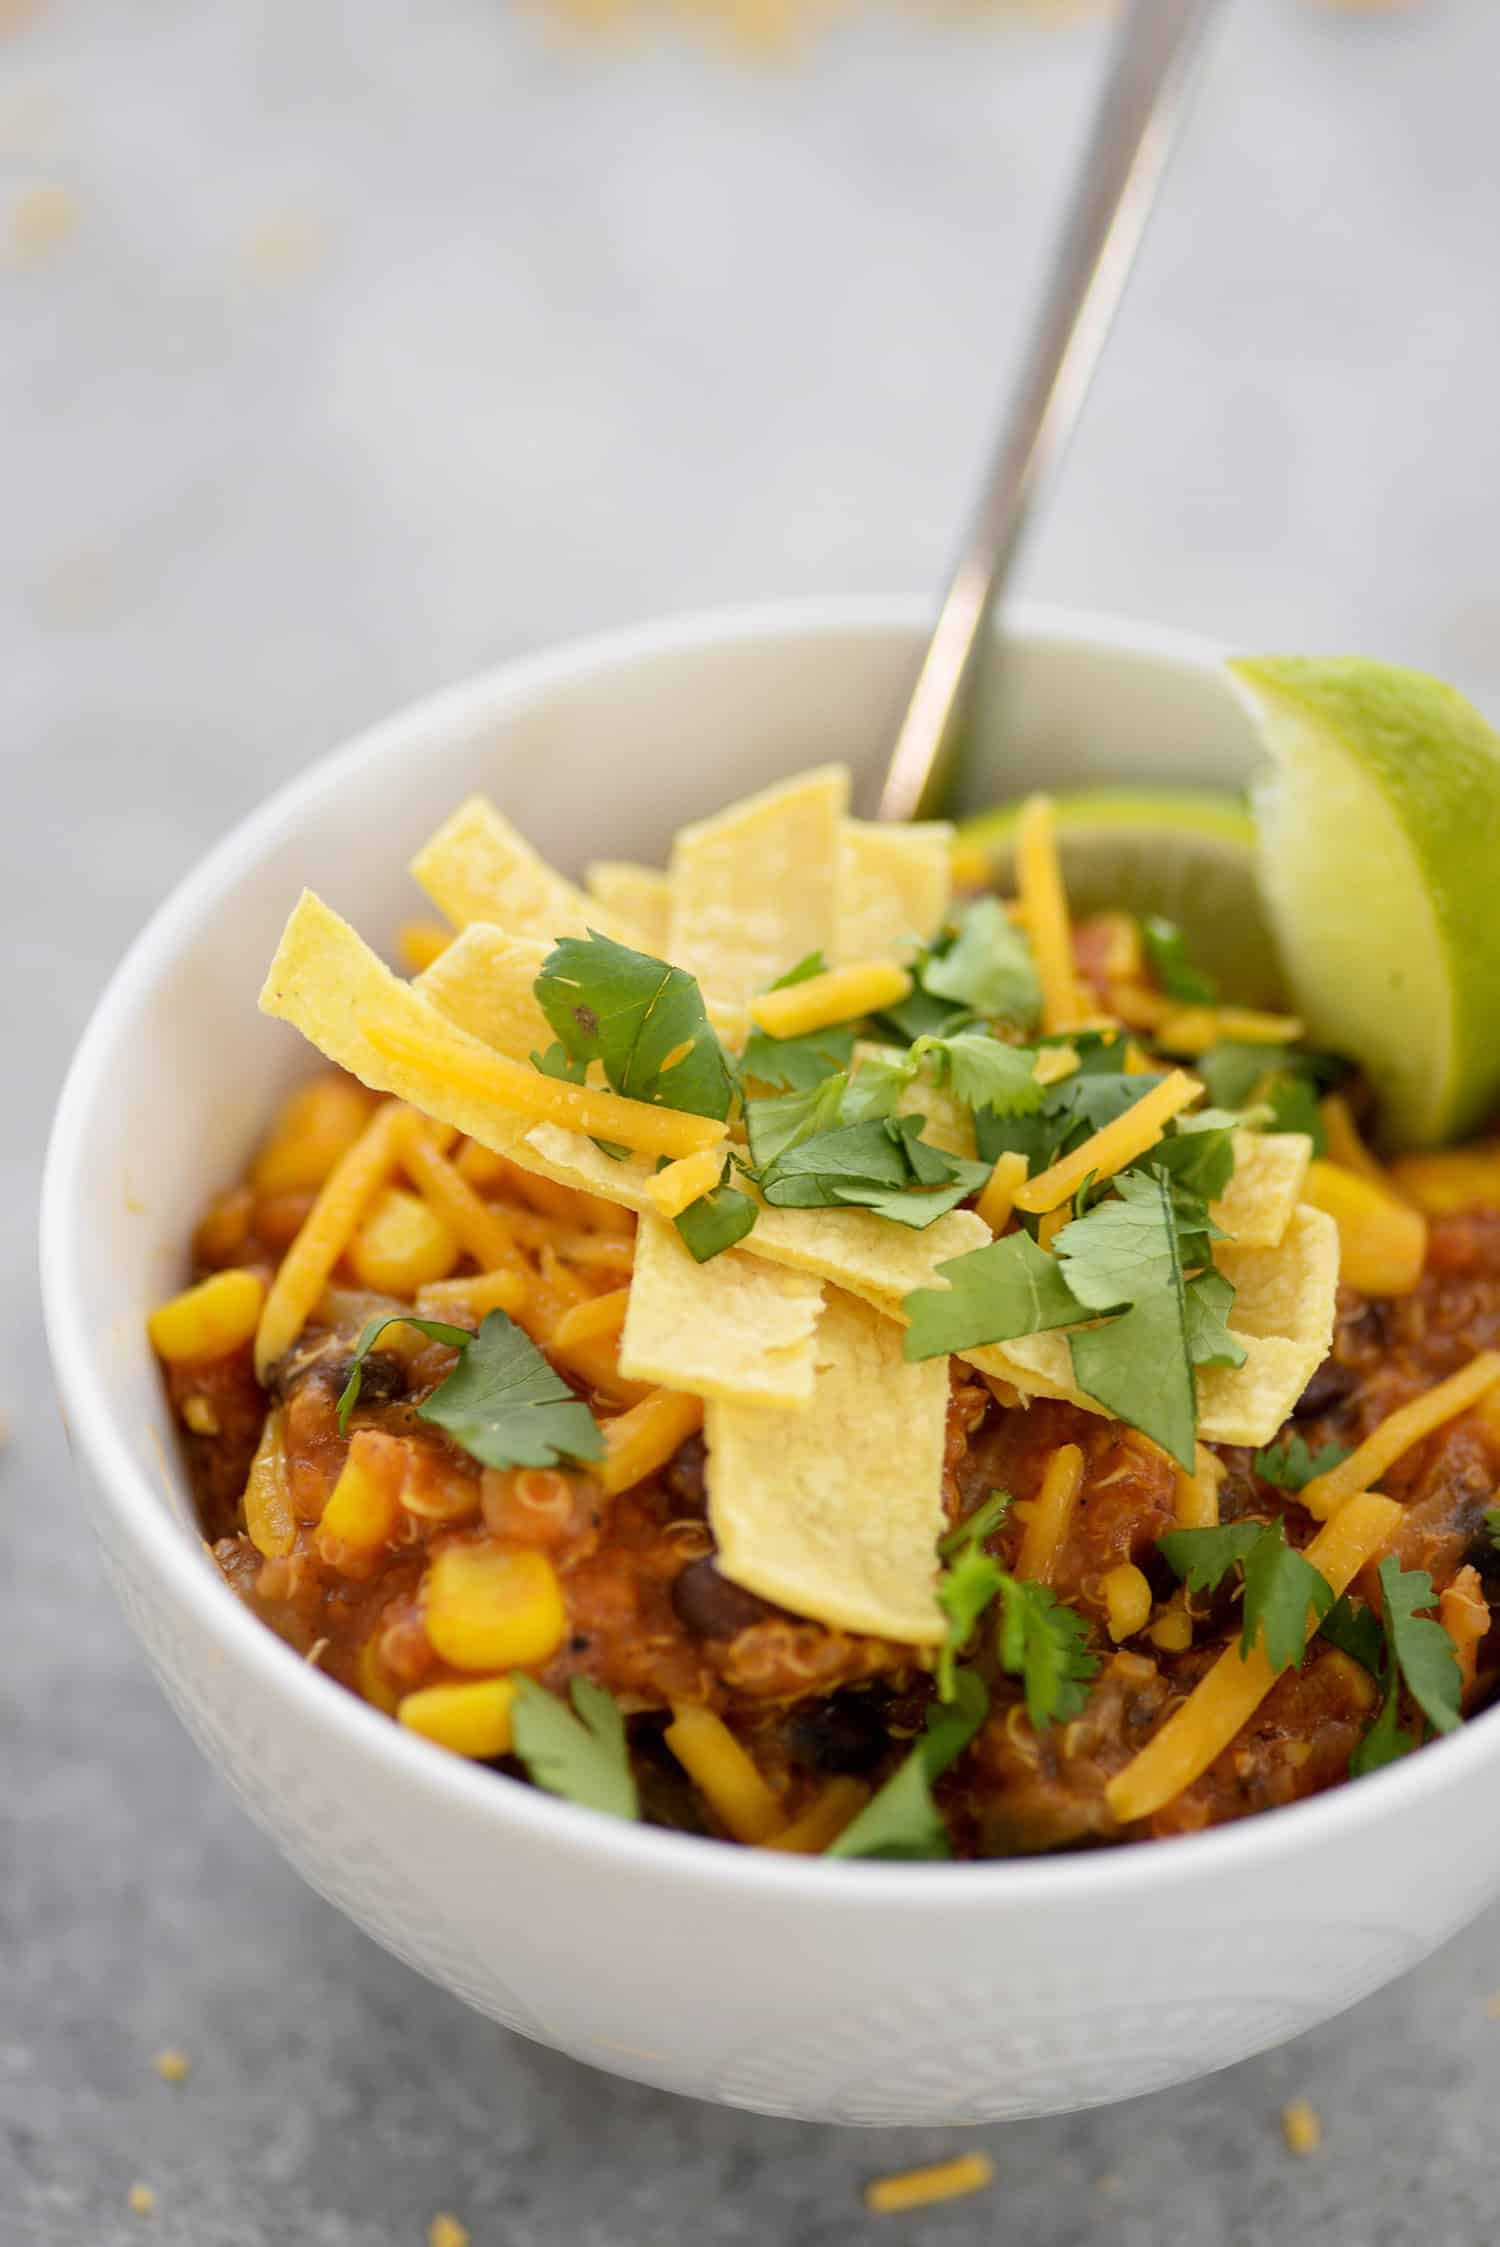 Instant Pot Enchilada Casserole. Yummy, vegetarian and gluten-free! Cooked quinoa, beans, corn and